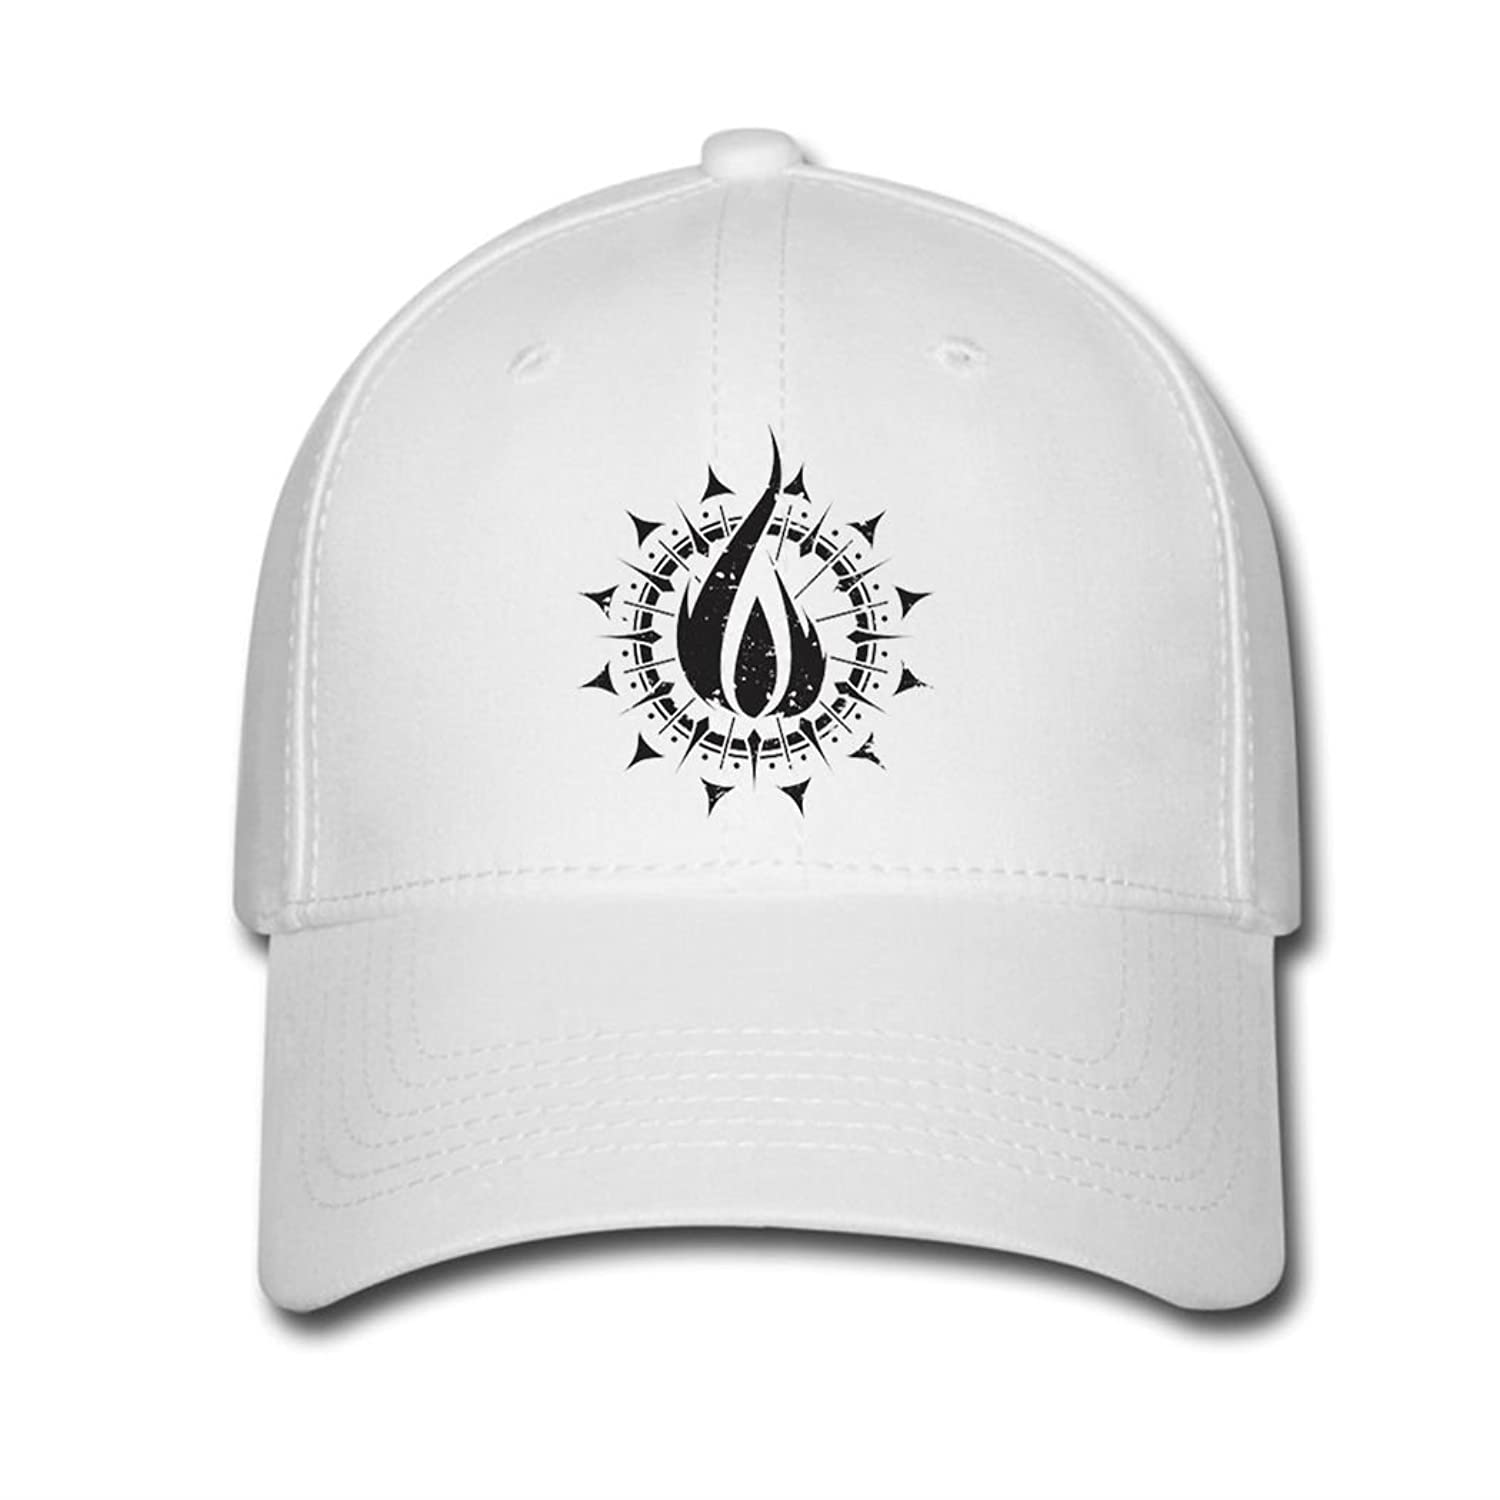 Adjustable In Flames Baseball Cap Running Cap